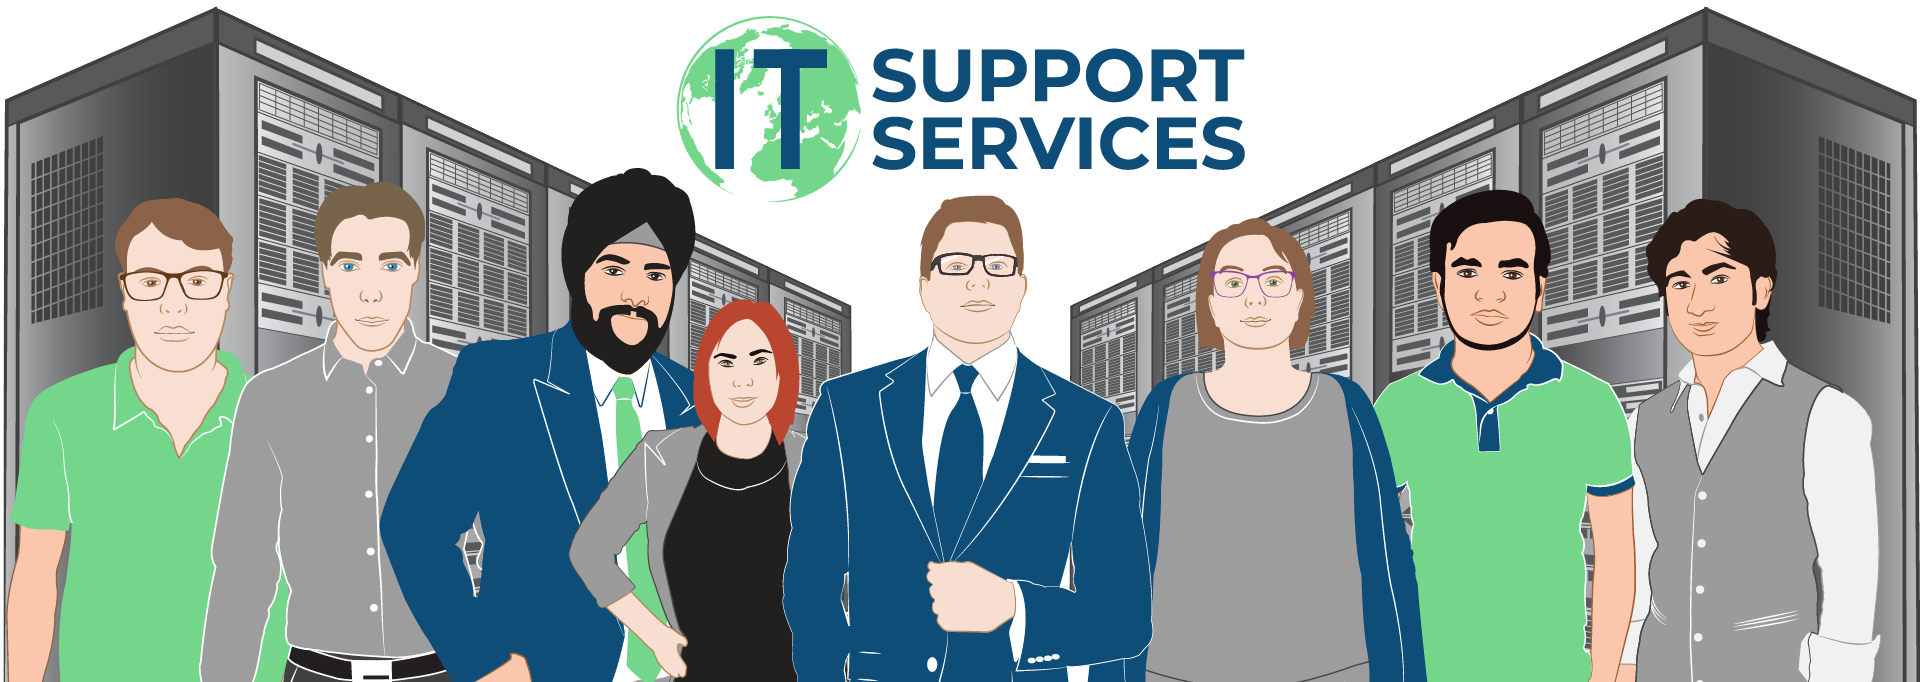 International IT Support Services Limited Team